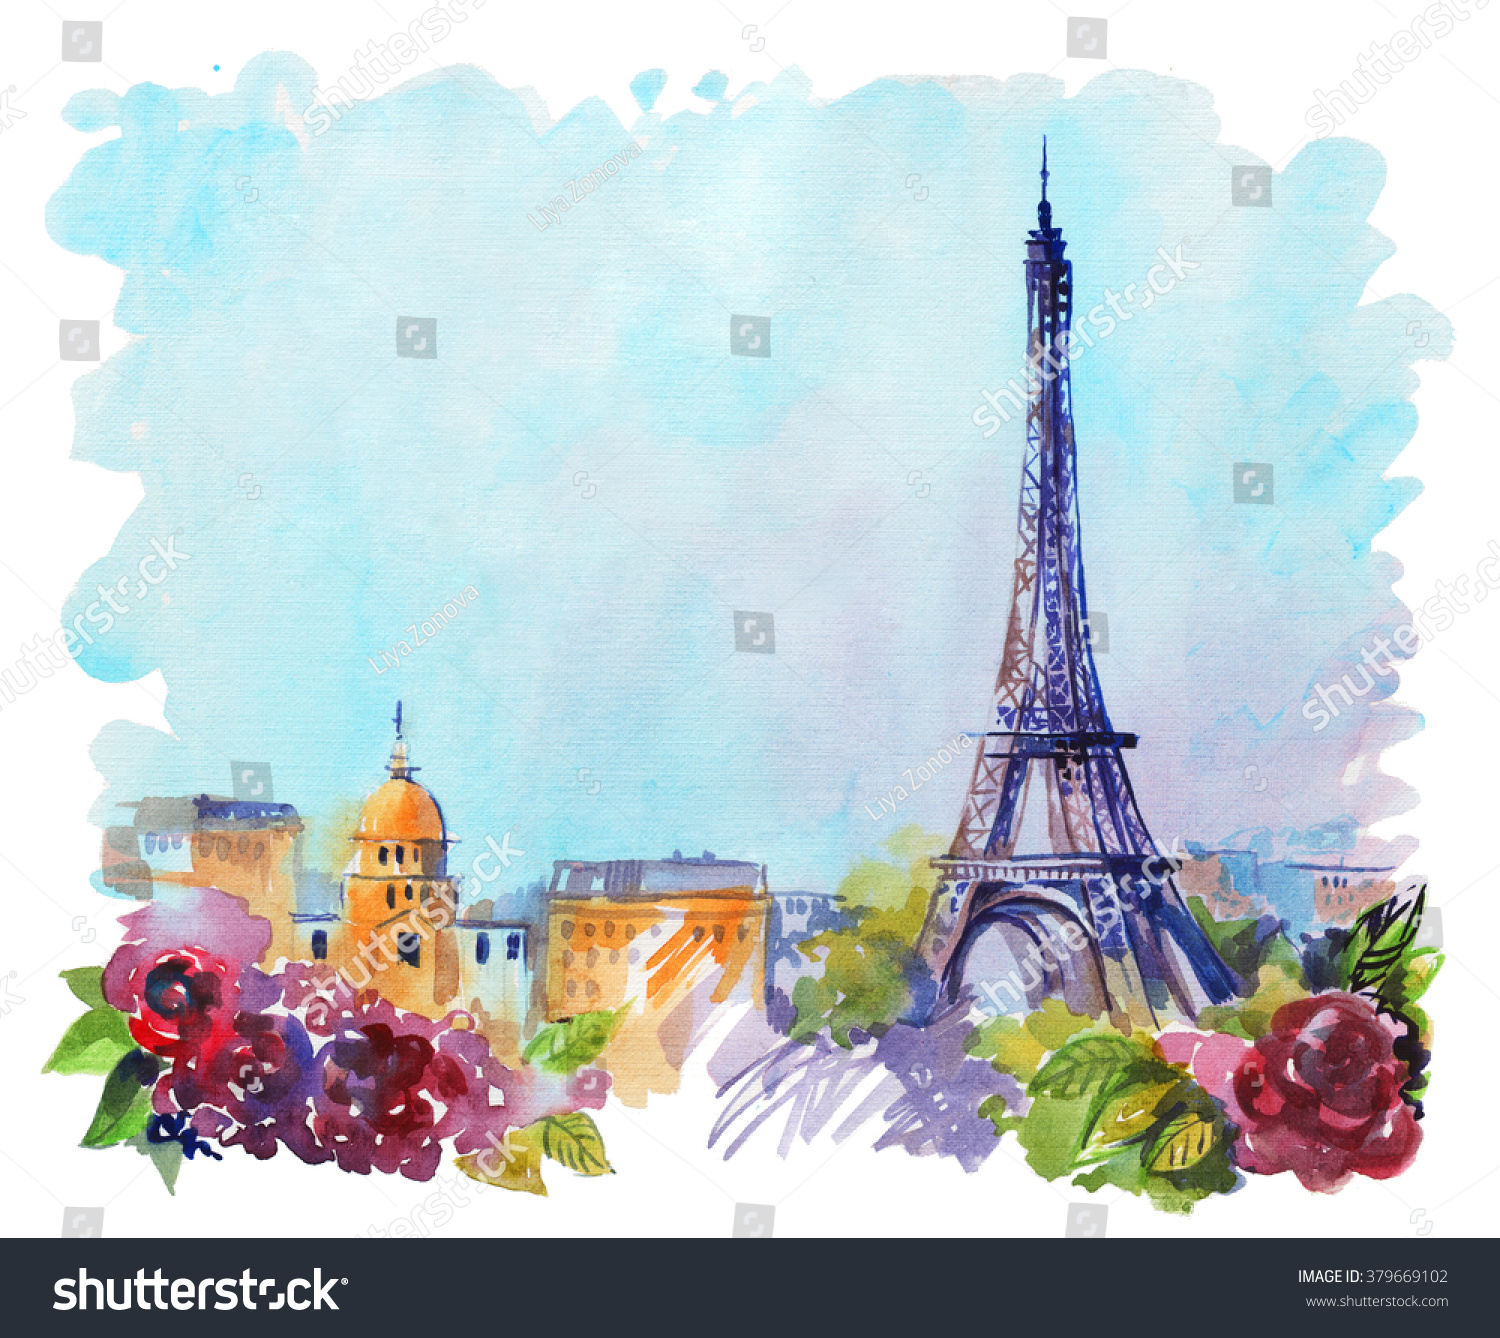 drawing by hand on wright paper beautiful background with Paris Watercolor with ink illustration with Eiffel Tower view of the city with high and many beautiful flowers